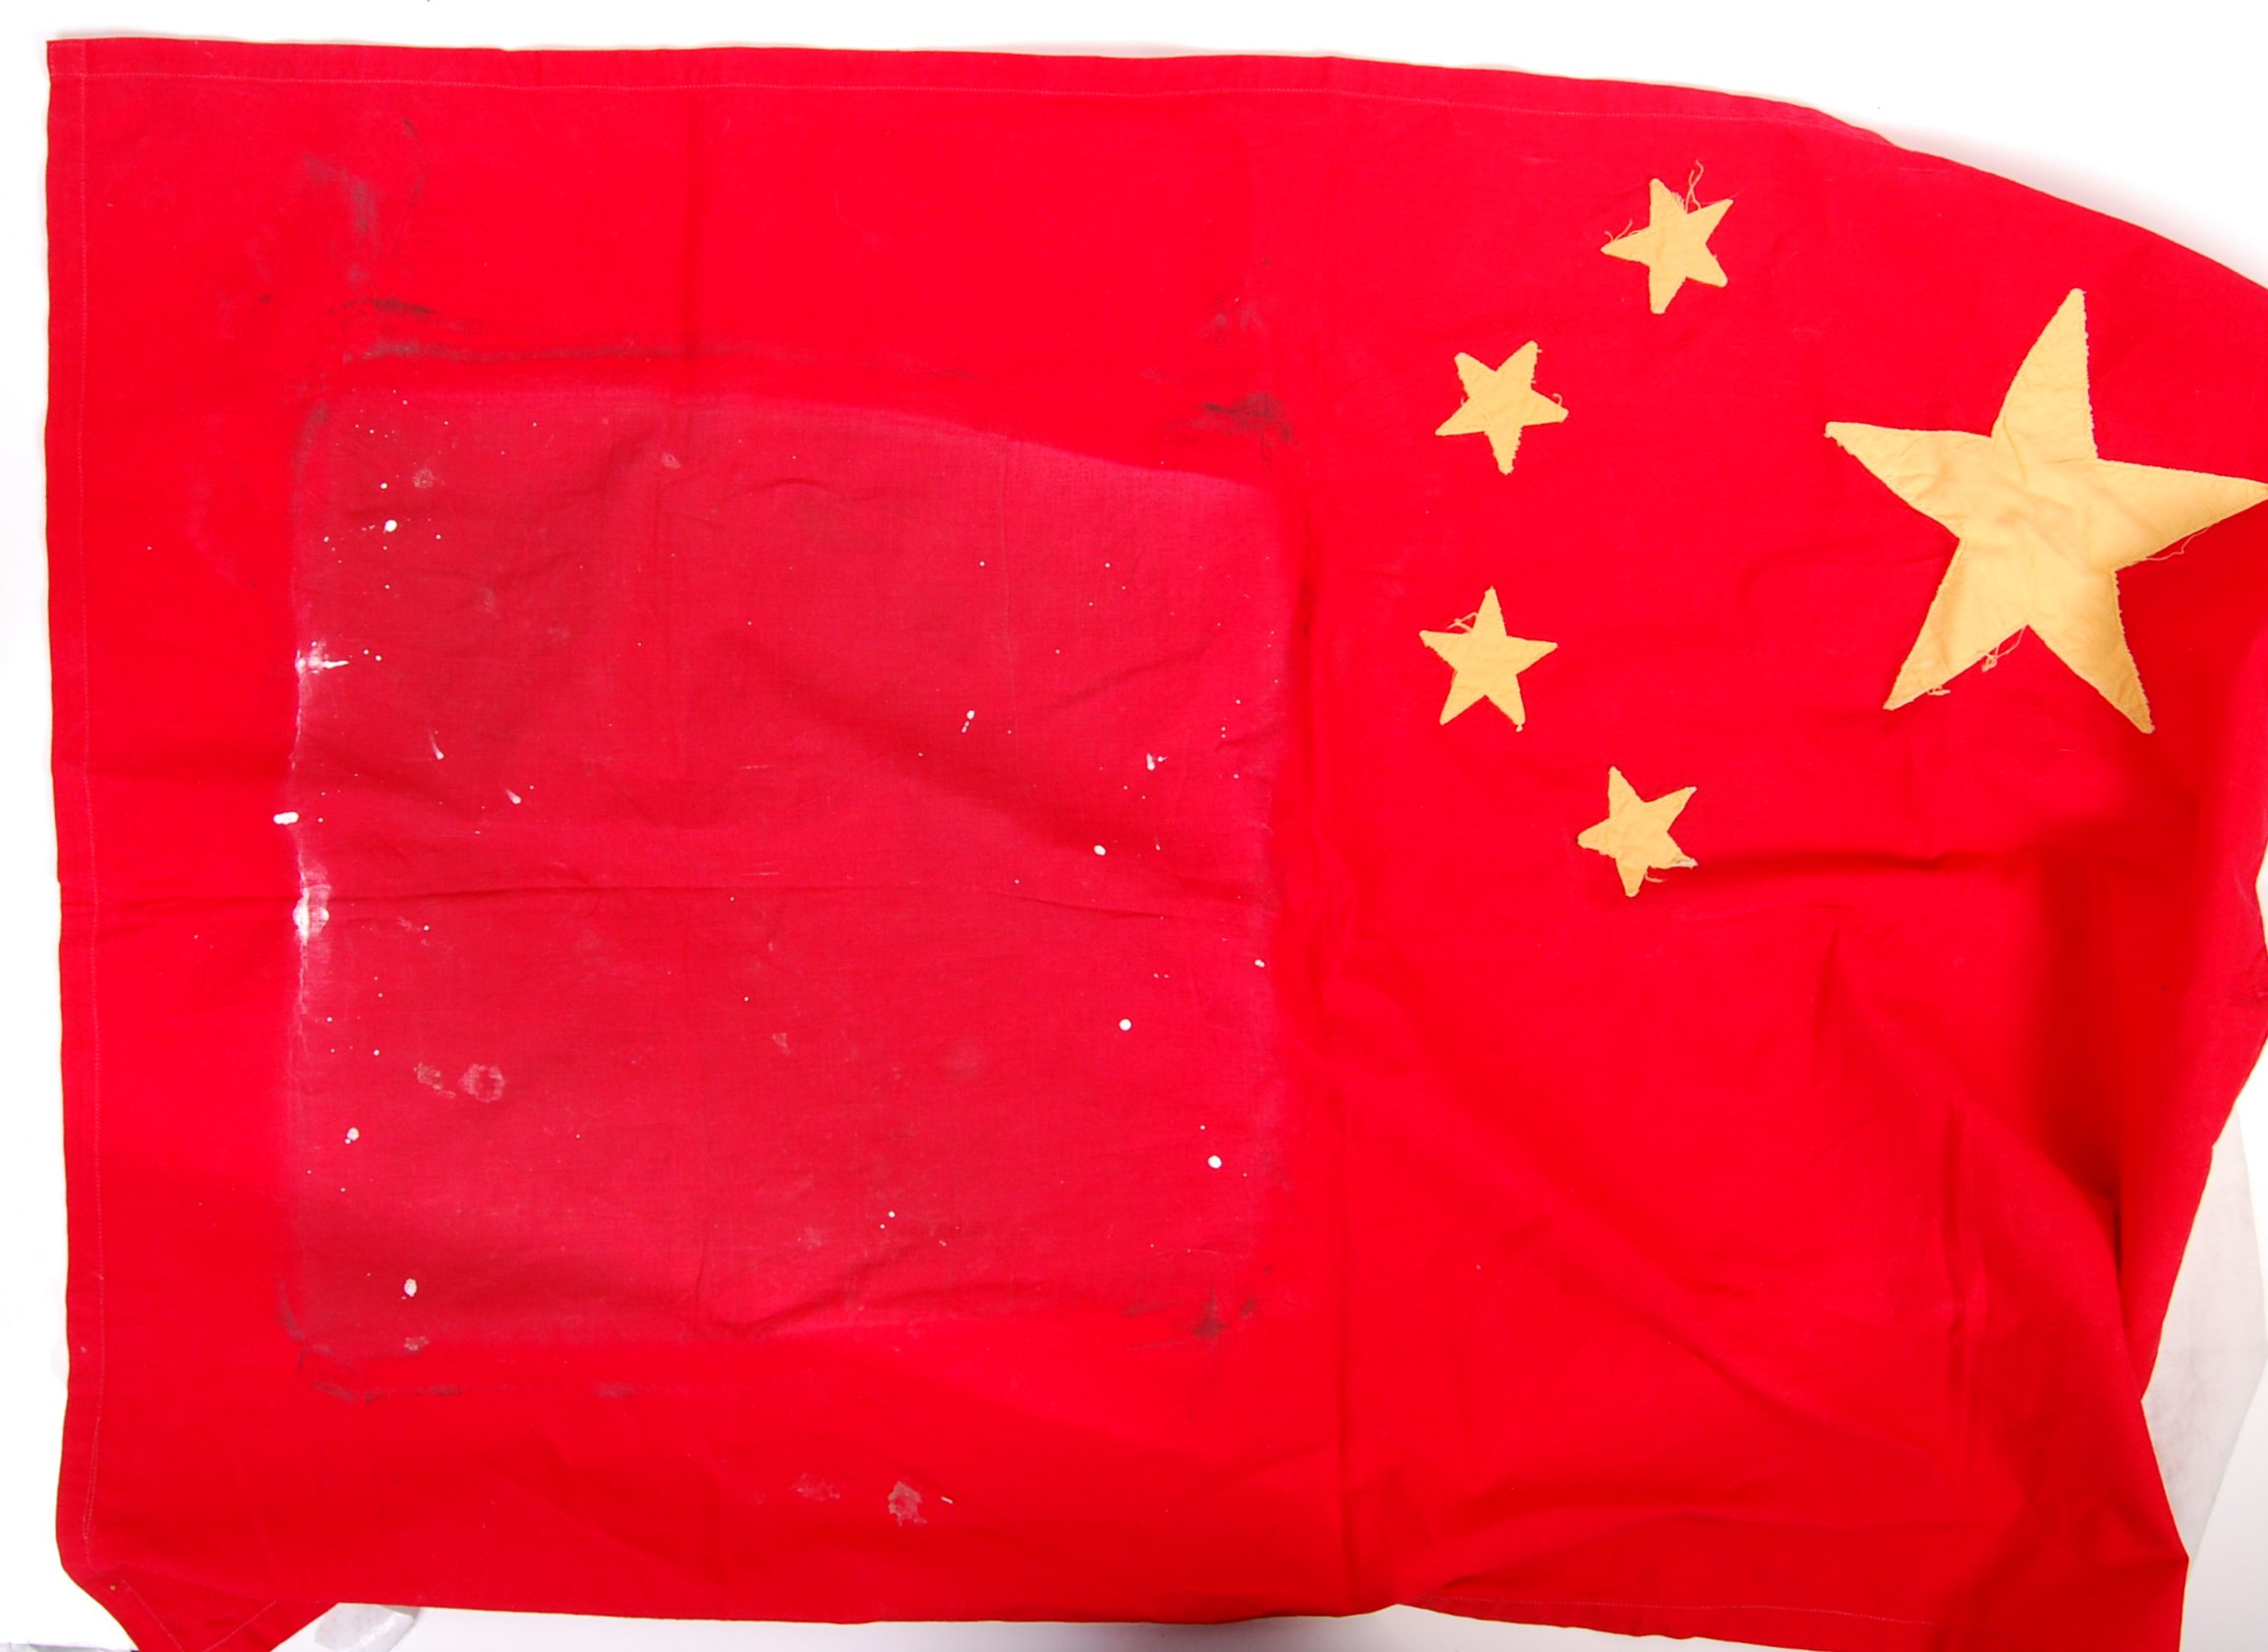 VINTAGE MID-CENTURY 1960'S FLAG OF CHINA - Image 3 of 3